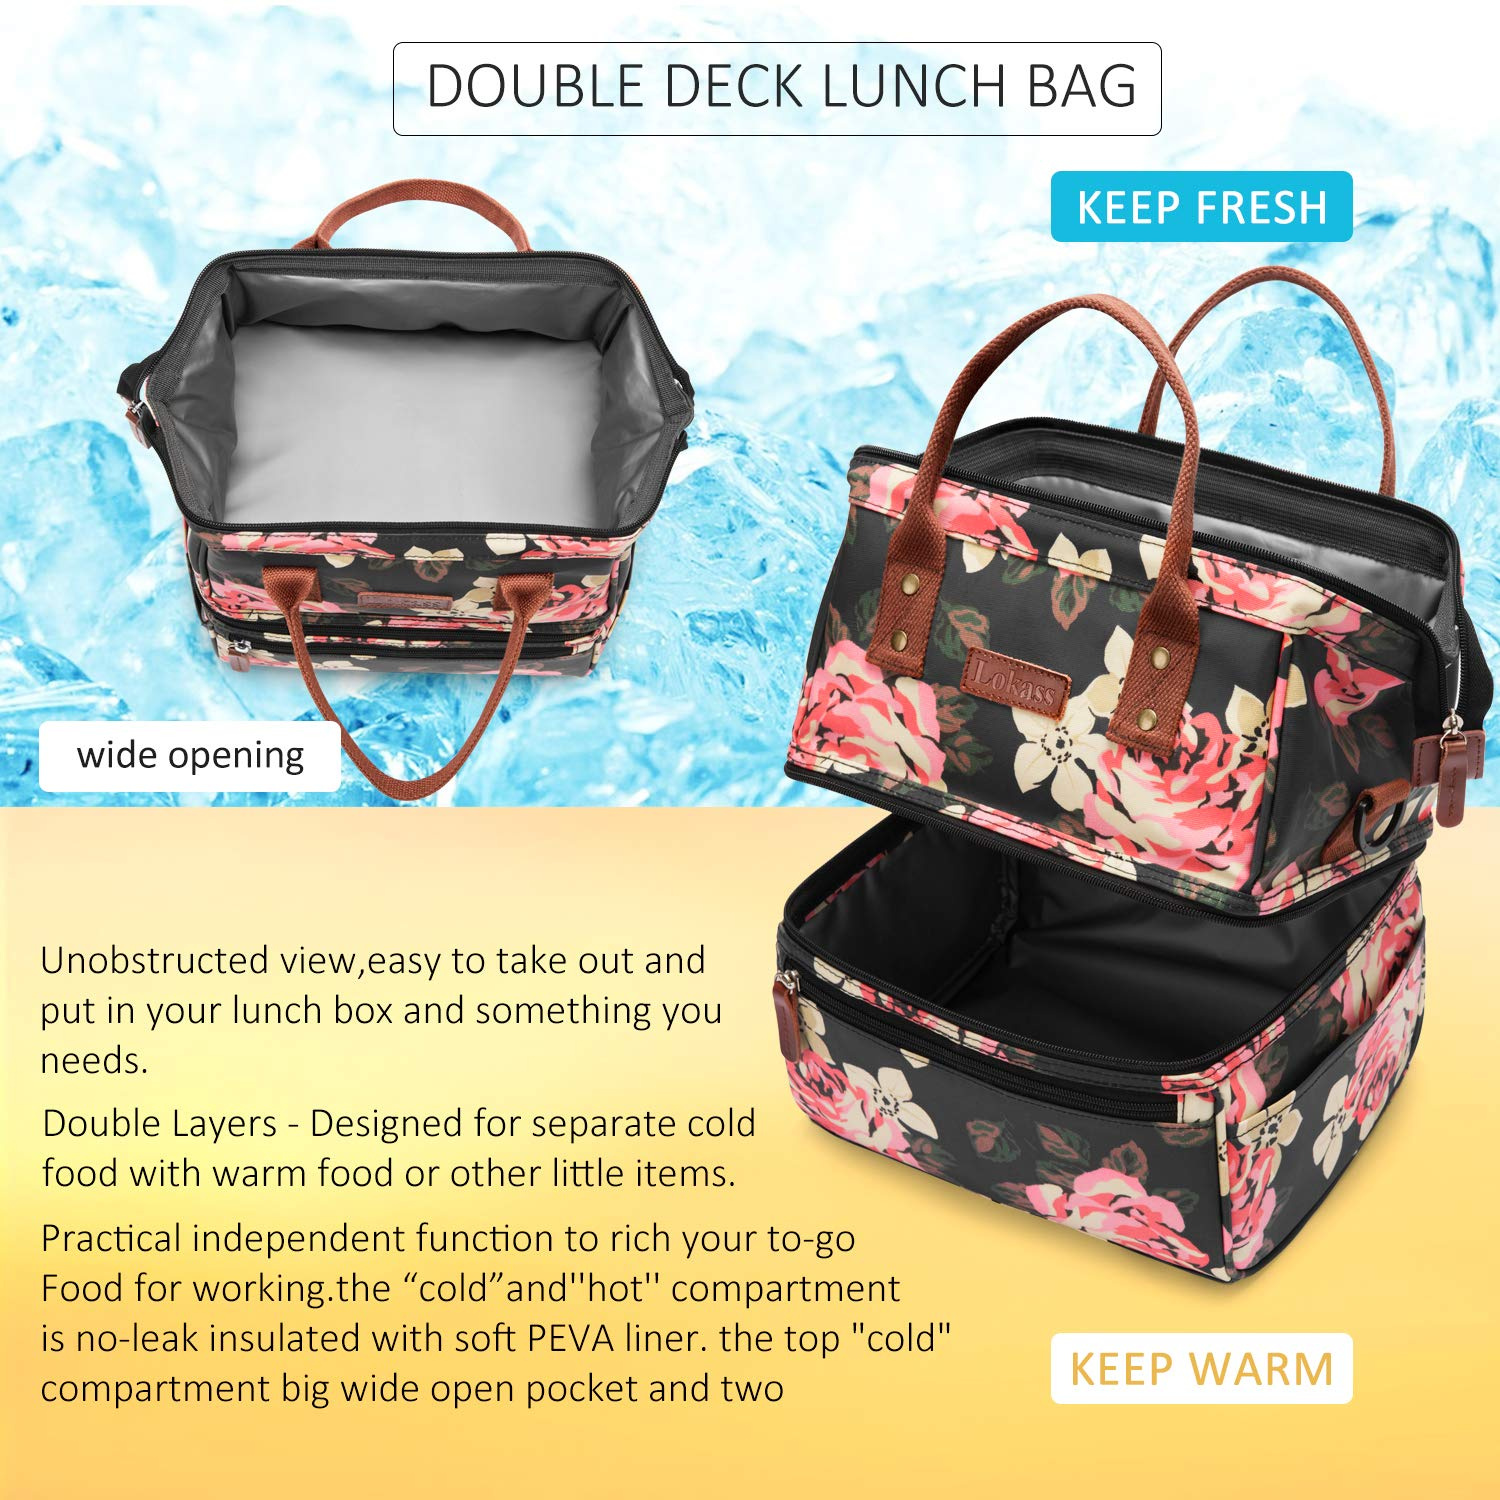 ec2630da0ce0 Lokass Lunch Bags for Women Wide Open Insulated Lunch Box With Double Deck  Large Capacity Cooler Tote Bag With Removable Shoulder Strap Lunch ...